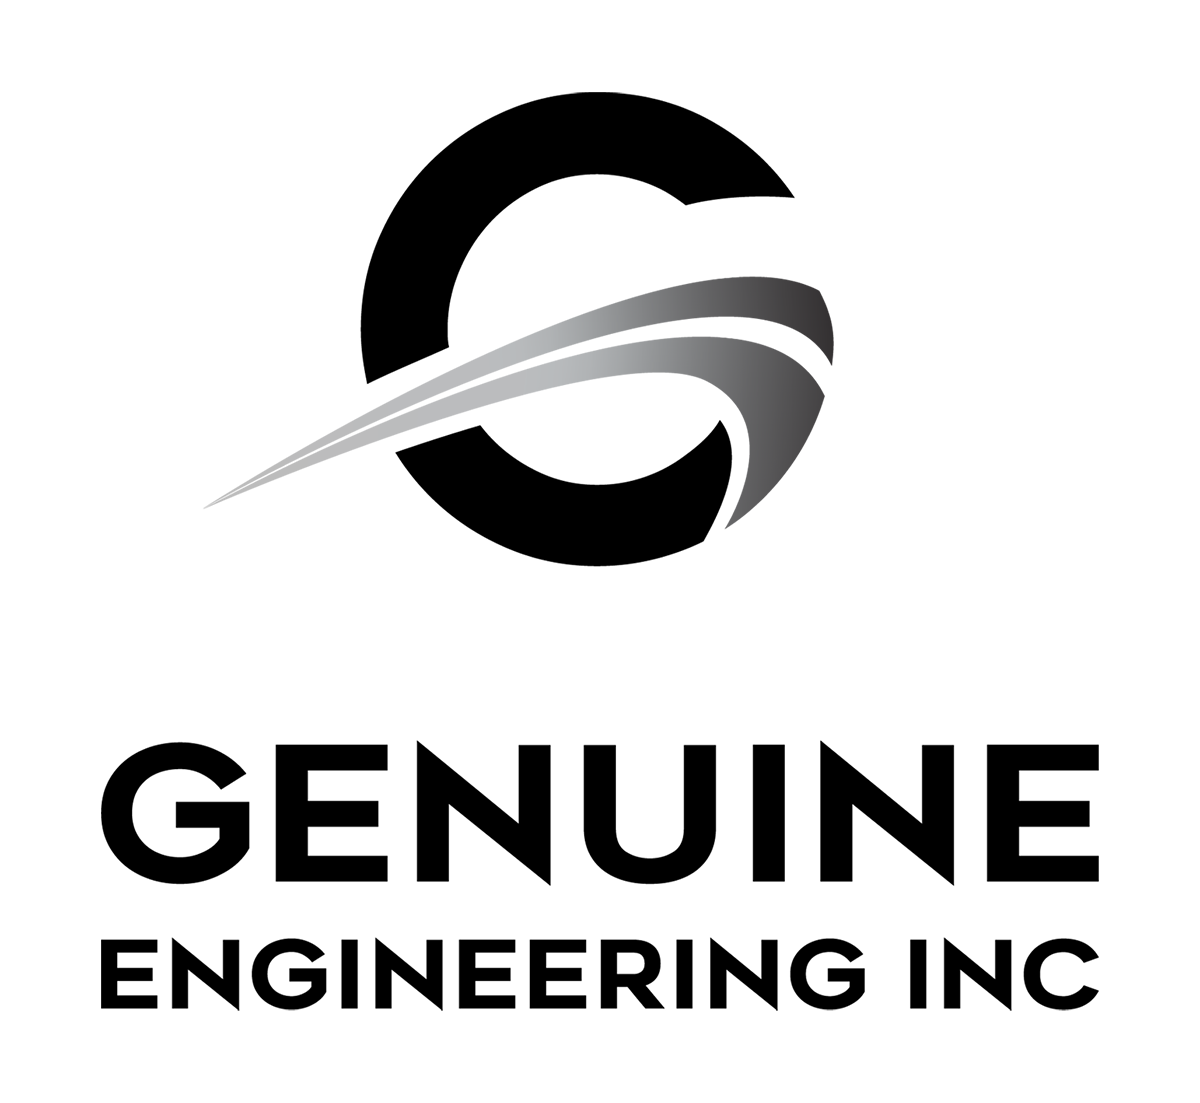 Genuine Engineering, Inc.